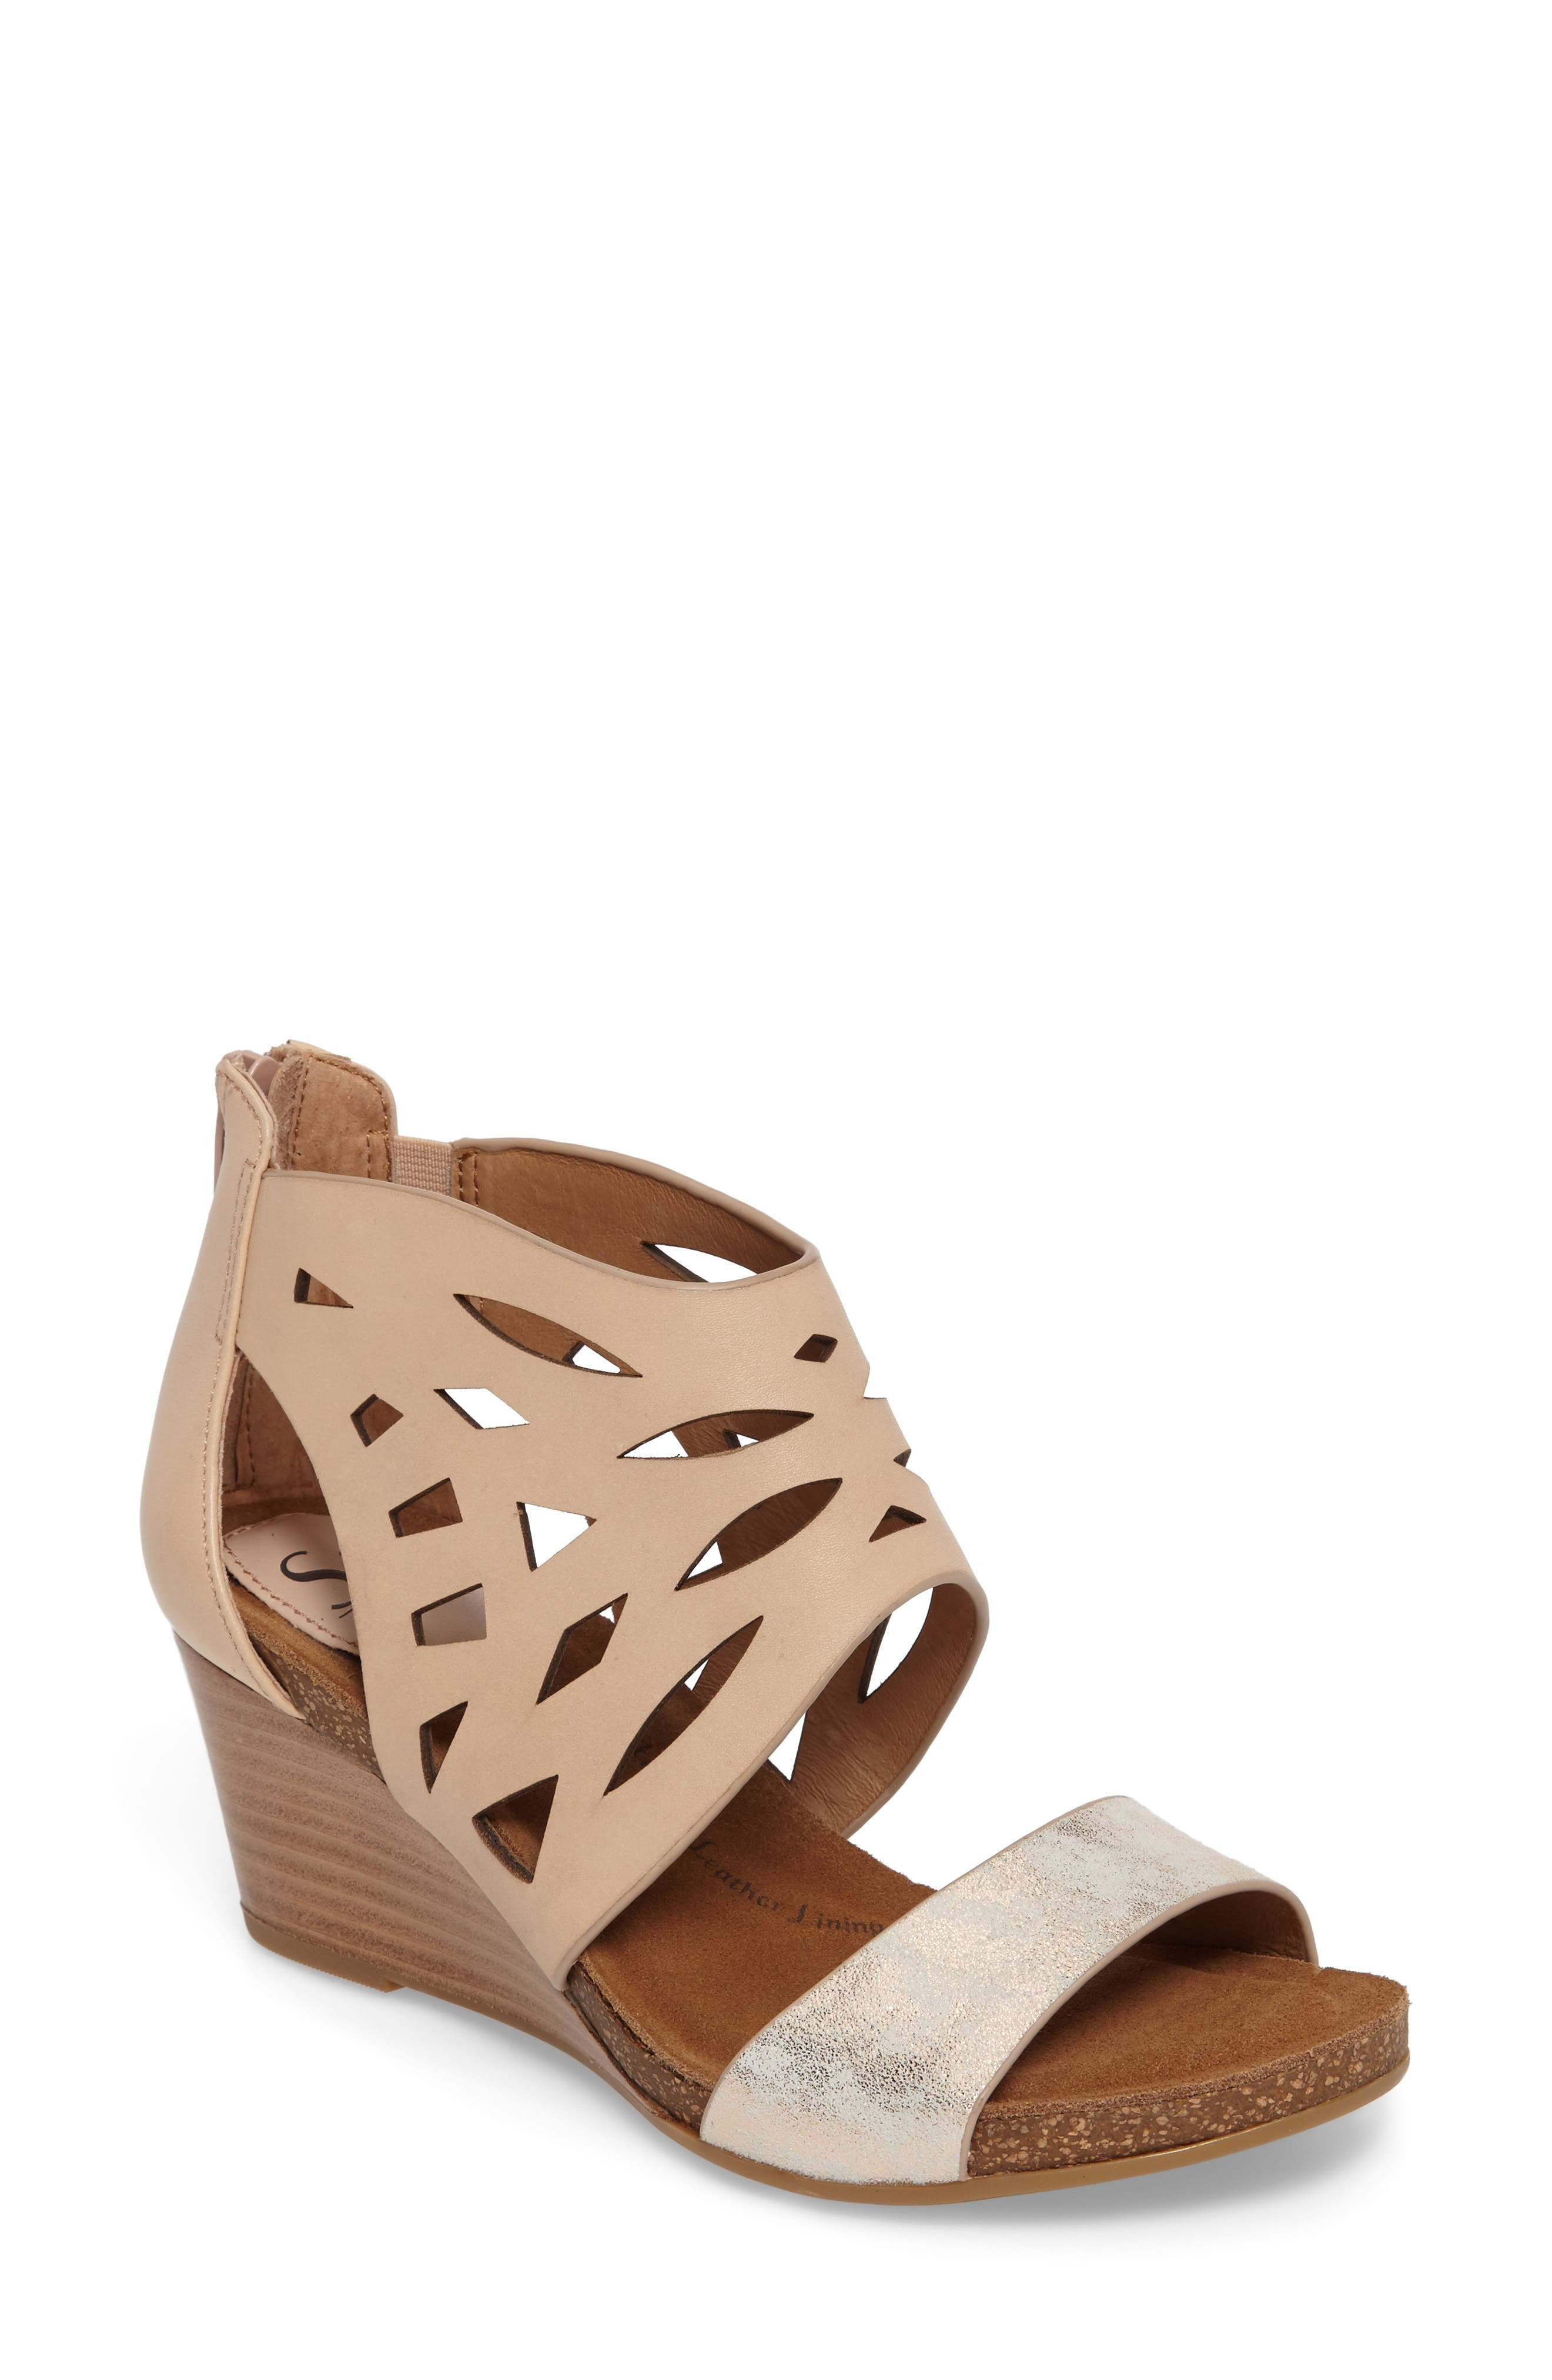 Mystic Perforated Wedge Sandal,                         Main,                         color,